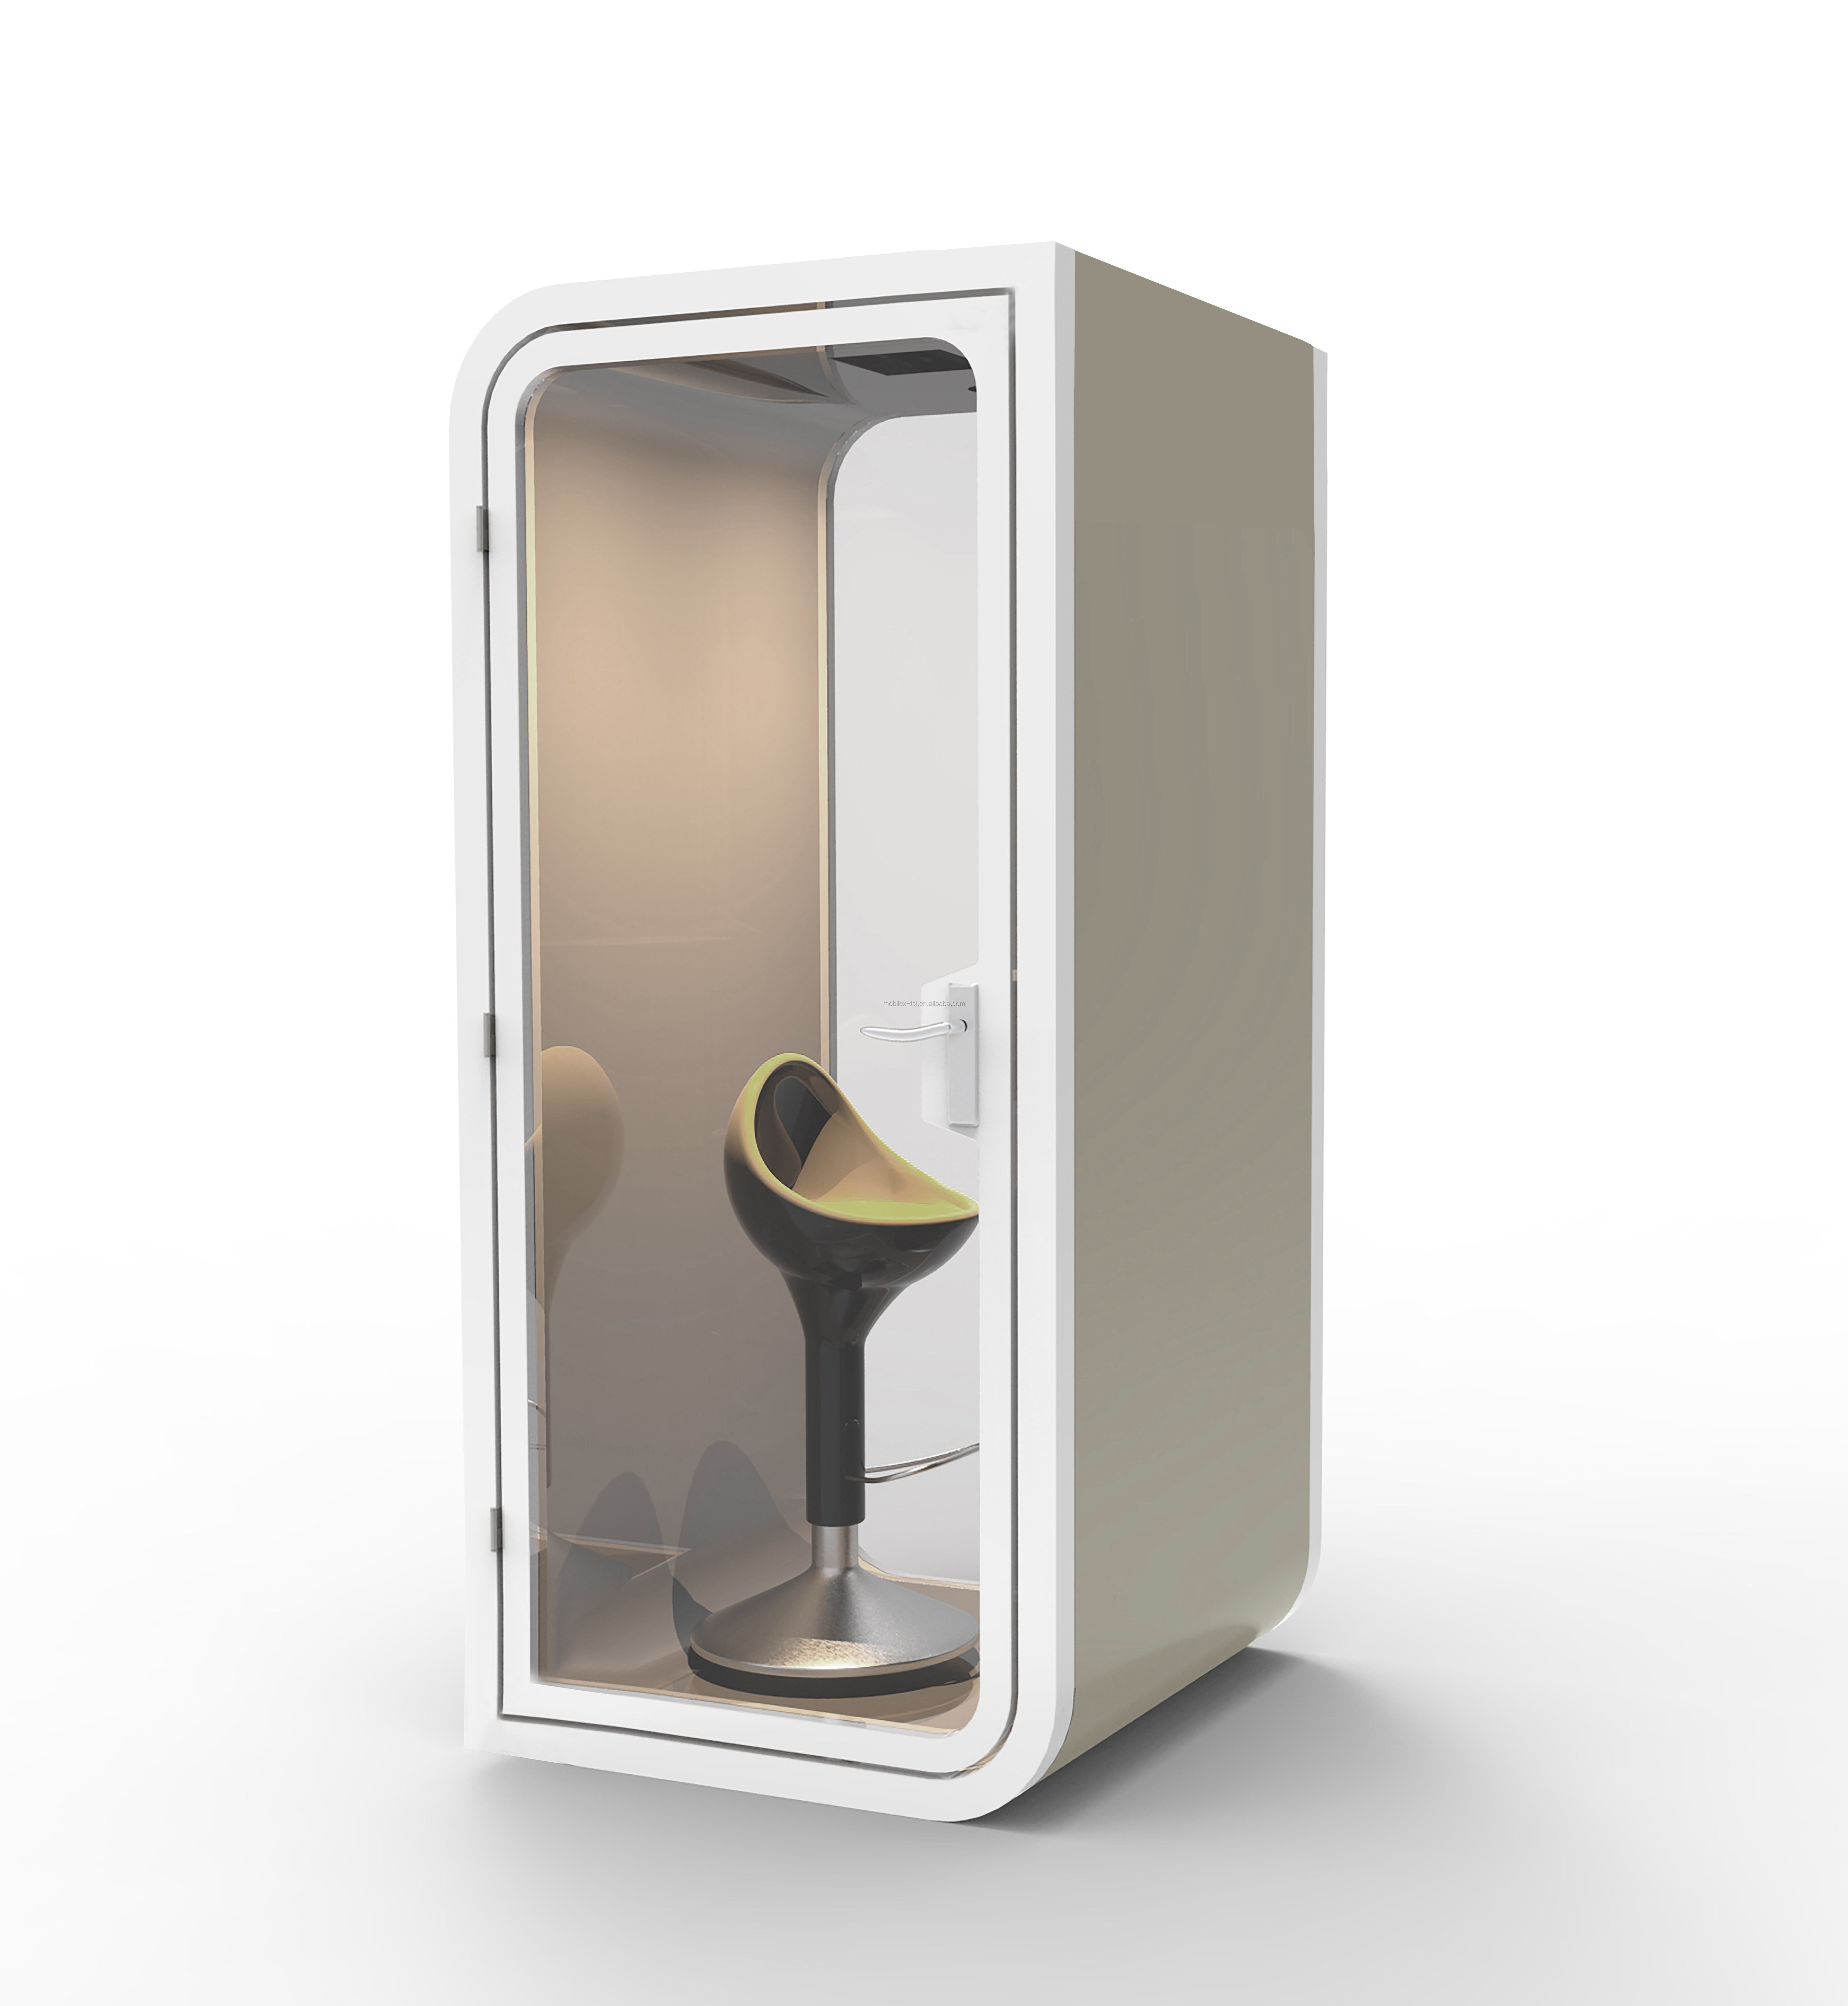 galvanized steel soundproof office phone booth as privacy pod with multi-color